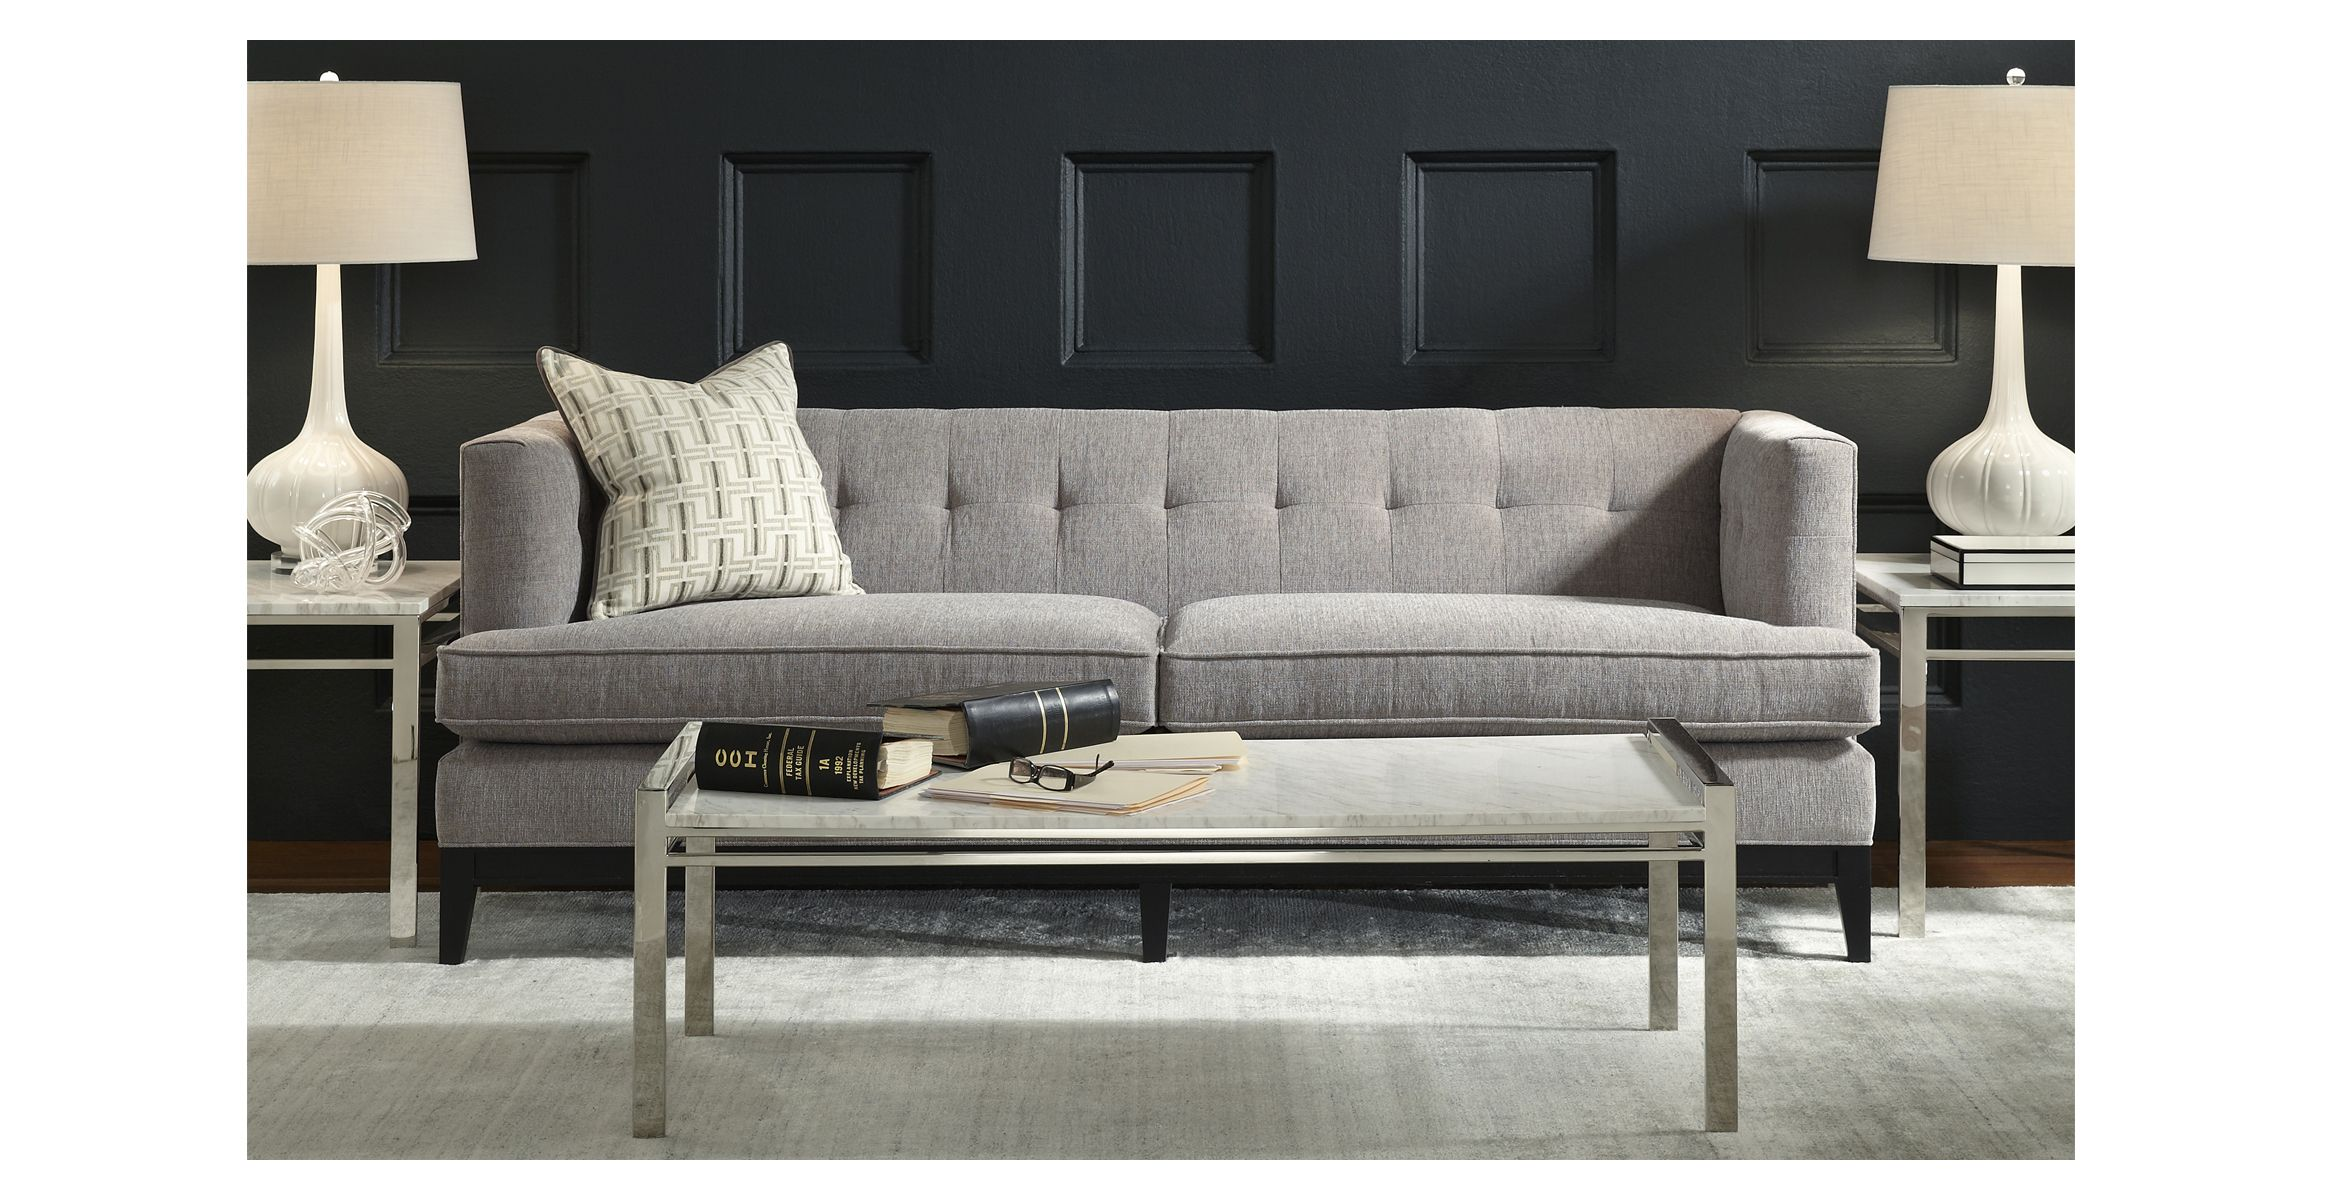 mitchell gold sectional sofa foam sofas india carys office available online 43 bob